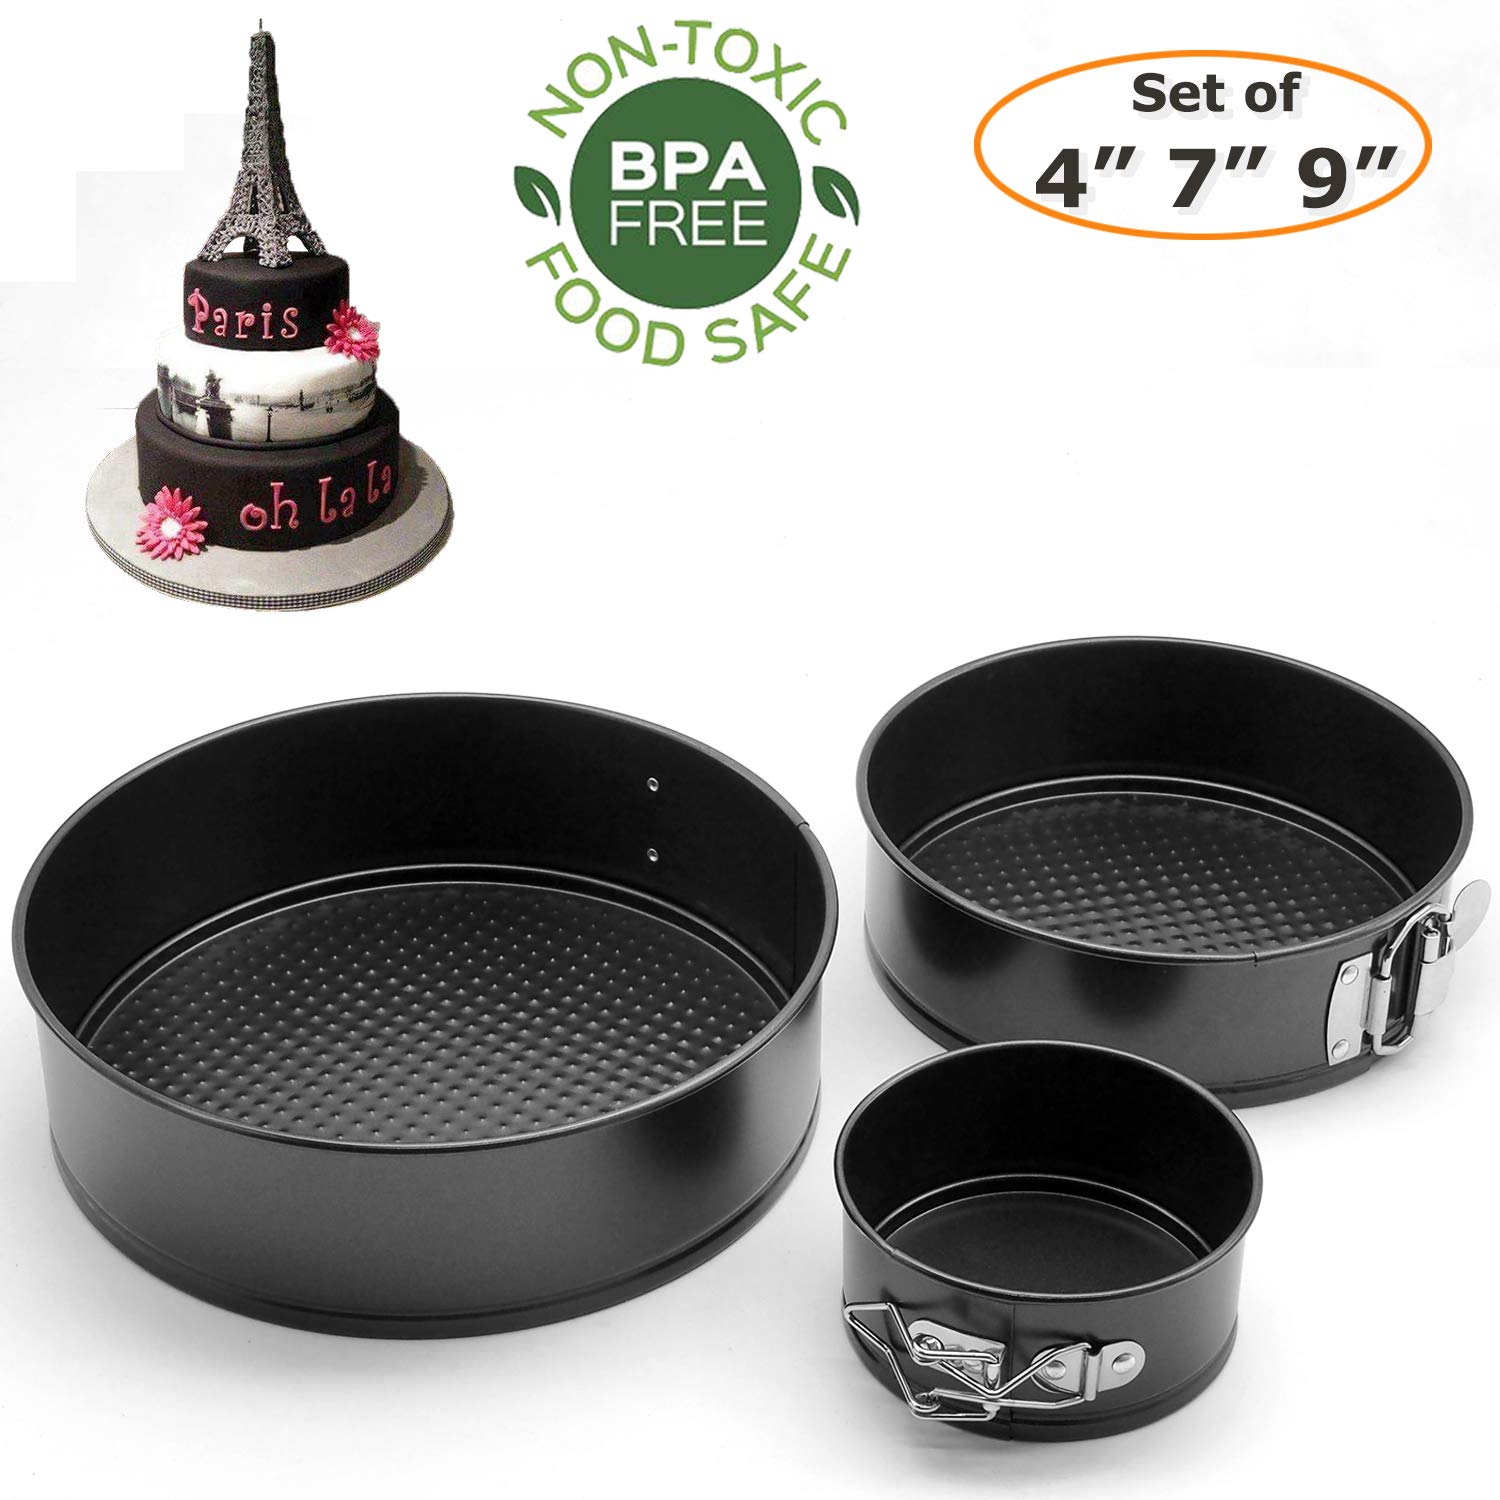 Springform Pan Set, 3 Pieces(4/7/9 inches) Food Grade Non-stick Leakproof Round Cake Pans, Heavy Duty Carbon Steel BPA Free Bakeware Removable Bottom Baking Molds for Cheesecake by Yeasgo by Yeasgo